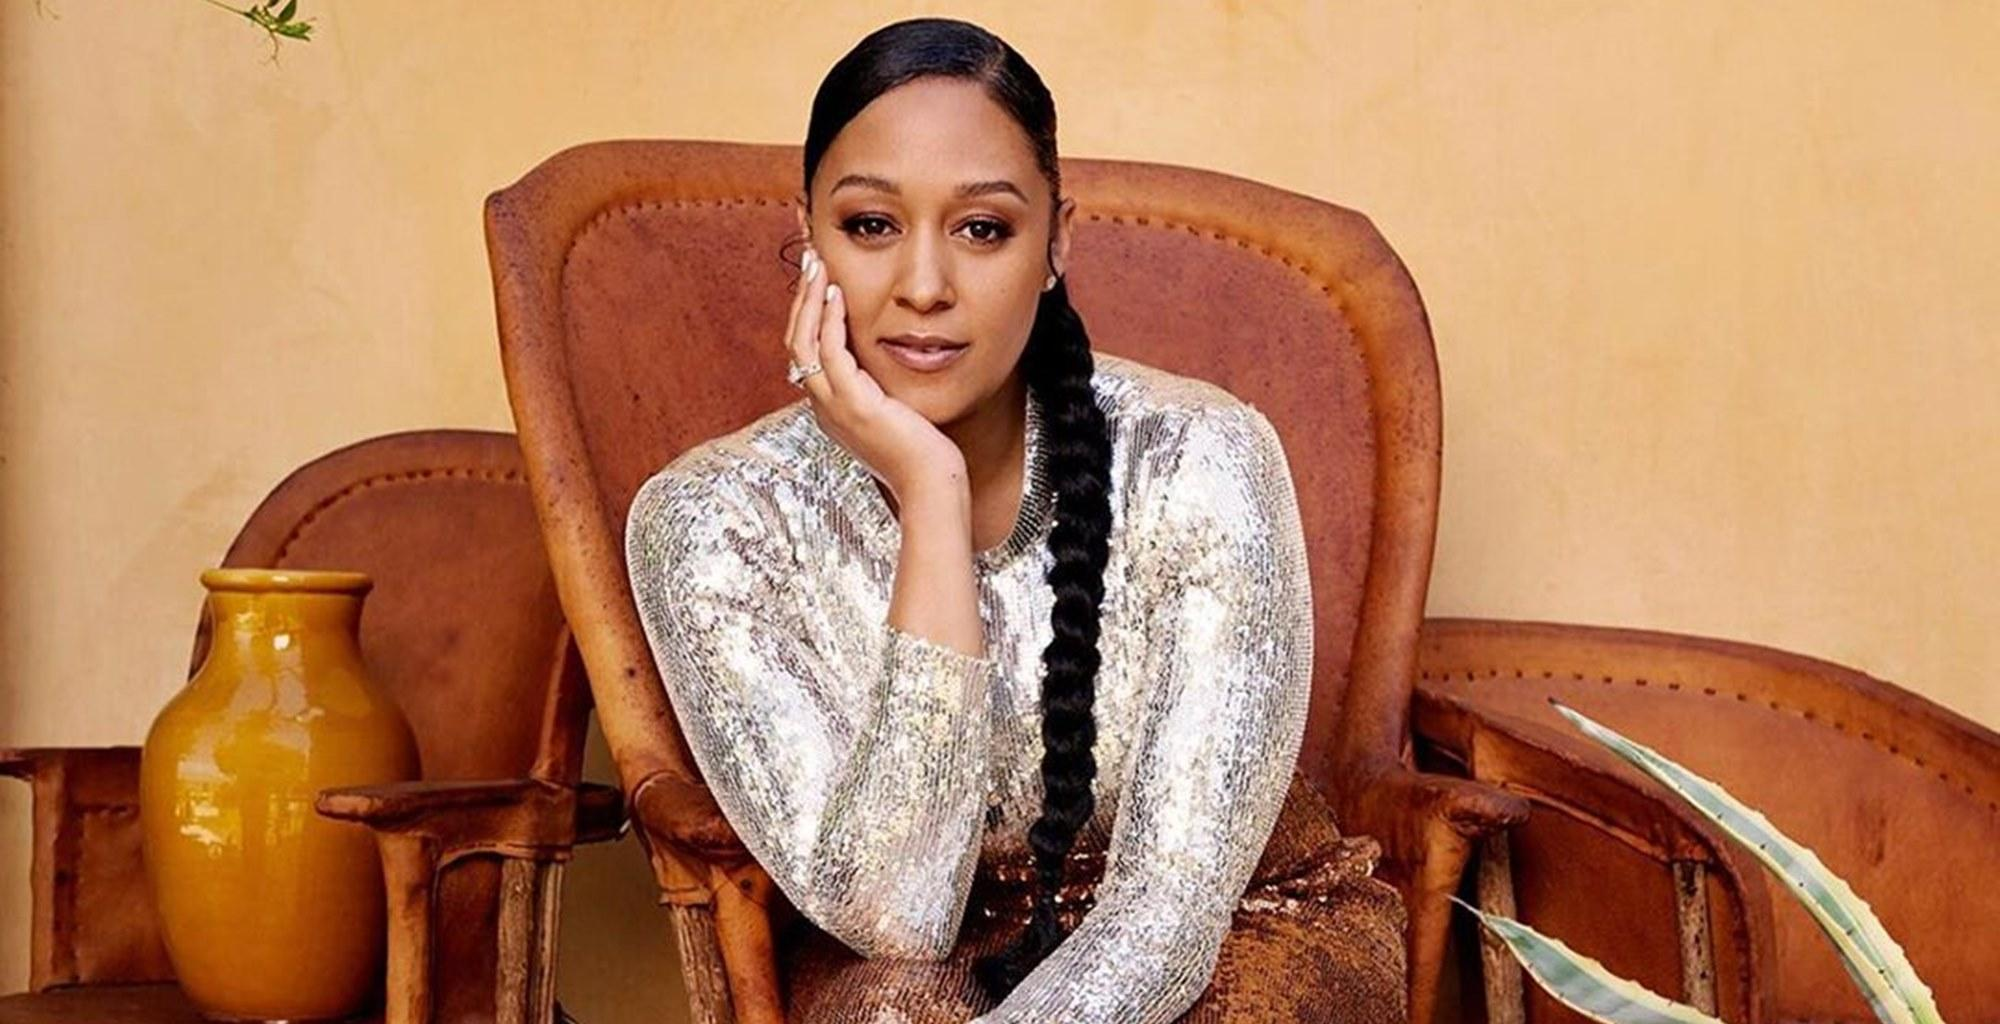 Tia Mowry And Her Daughter, Cairo, Wear Matching Lemon Pajamas In New Photo And Give Fans The Most Adorable Family Moment Ever